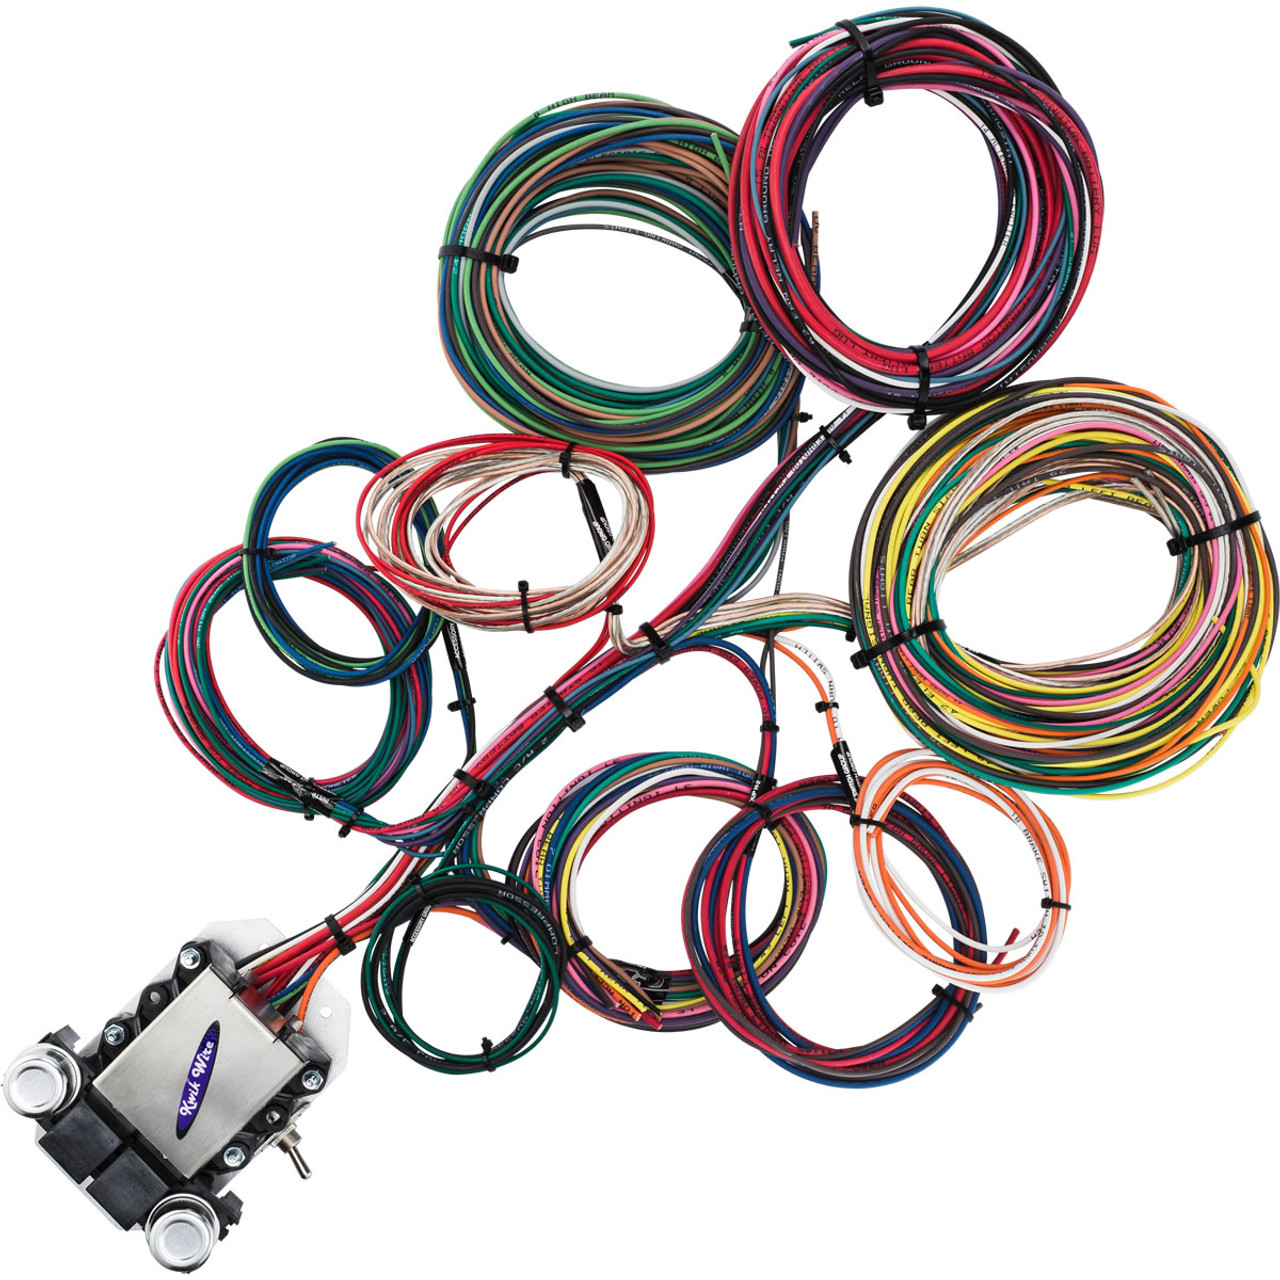 14 Circuit Ford Wire Harness - KwikWire.com | Electrify Your Ride on f15 wiring harness, f1 wiring harness, f150 wiring harness, ranger wiring harness, f550 wiring harness, f650 wiring harness, f350 wiring harness, gt wiring harness, mustang wiring harness,